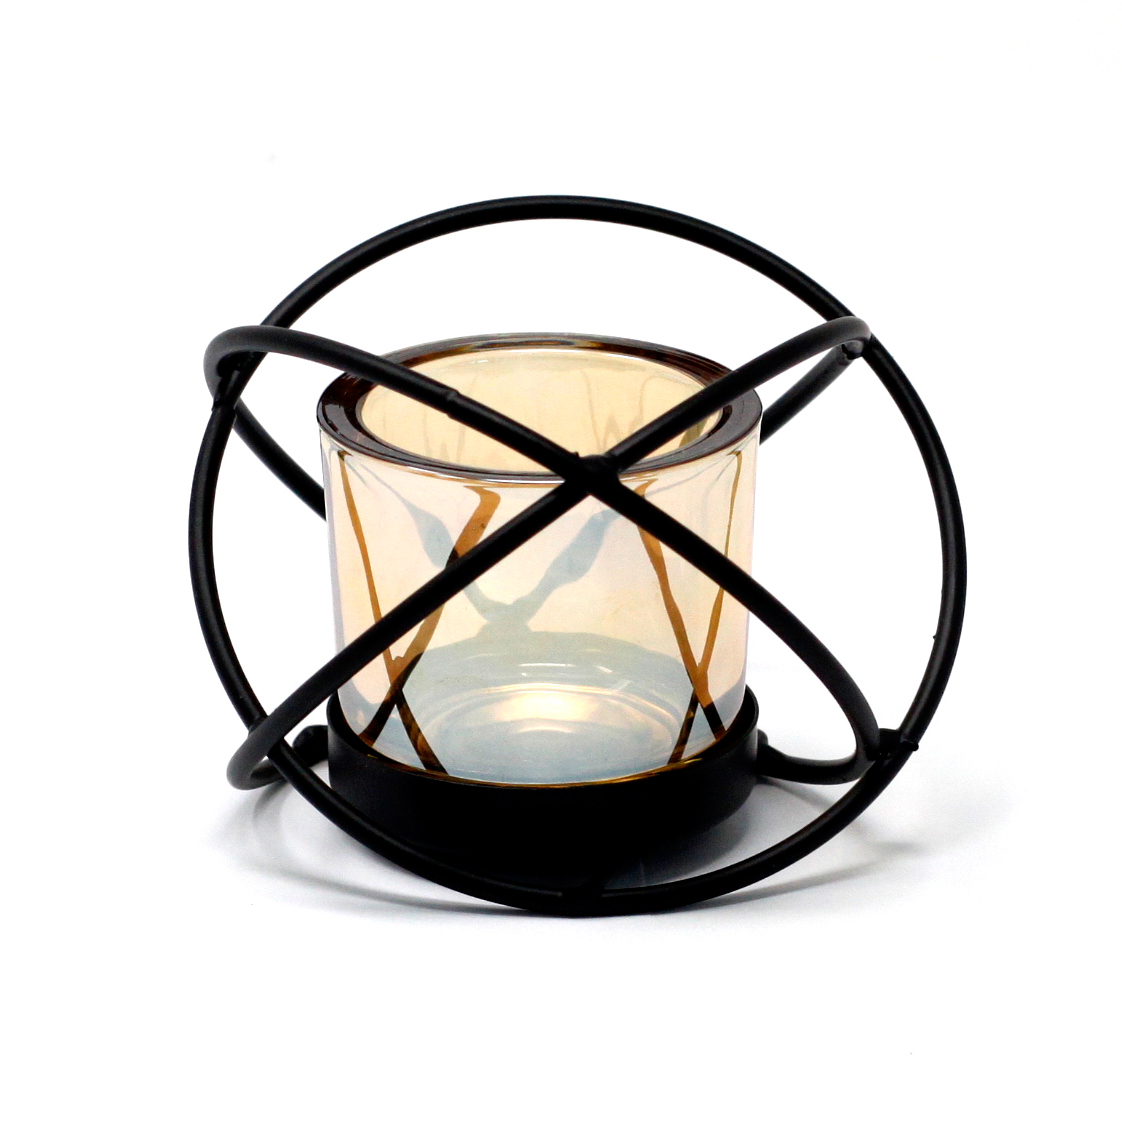 Centrepiece Iron Votive Candle Holder 1 Cup Single Ball